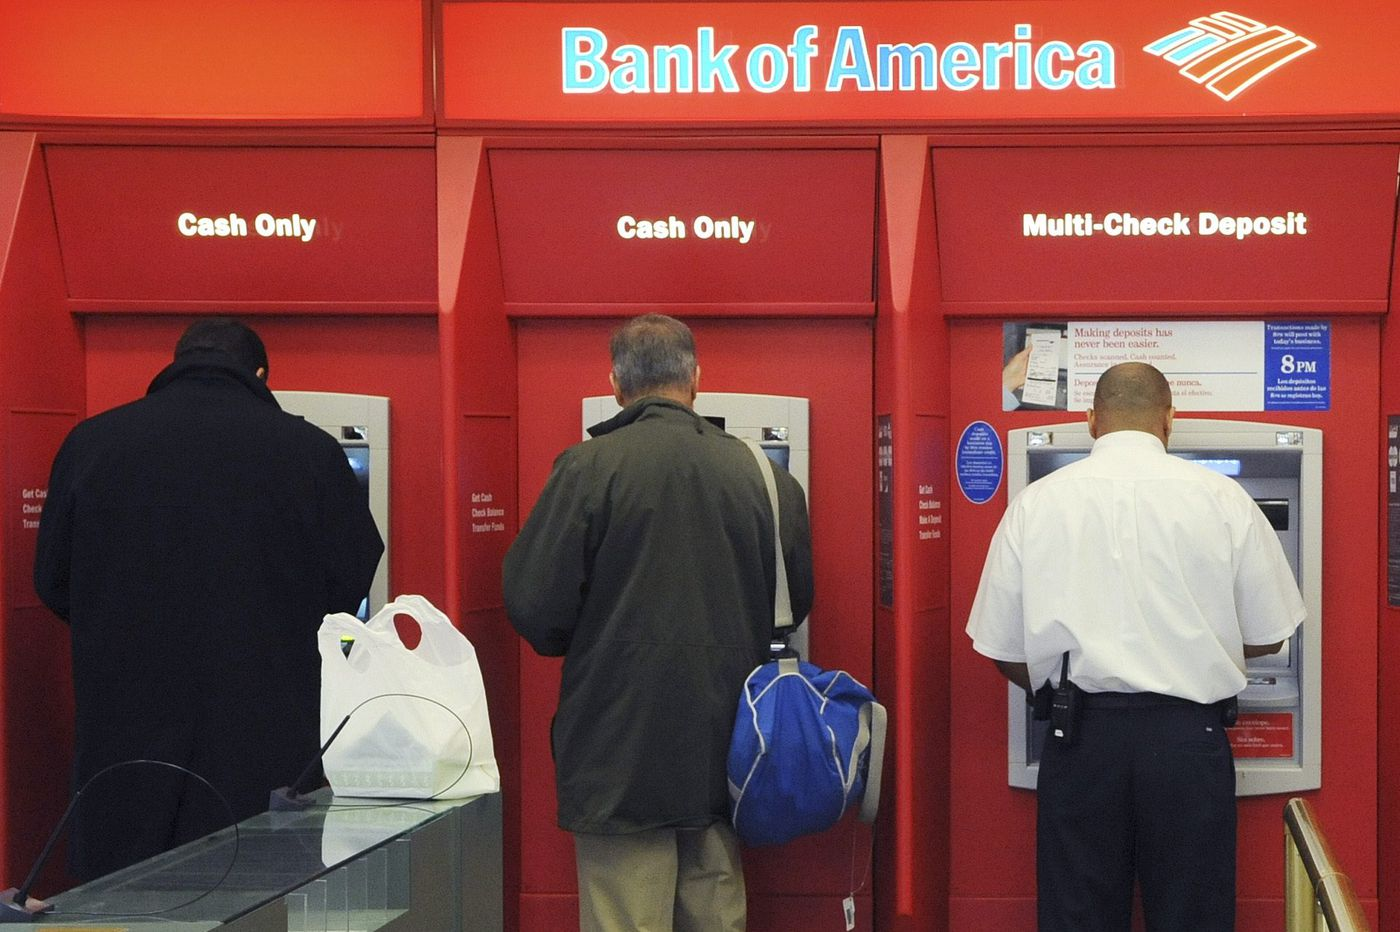 Philly's 'unbanked' population didn't budge in 2017